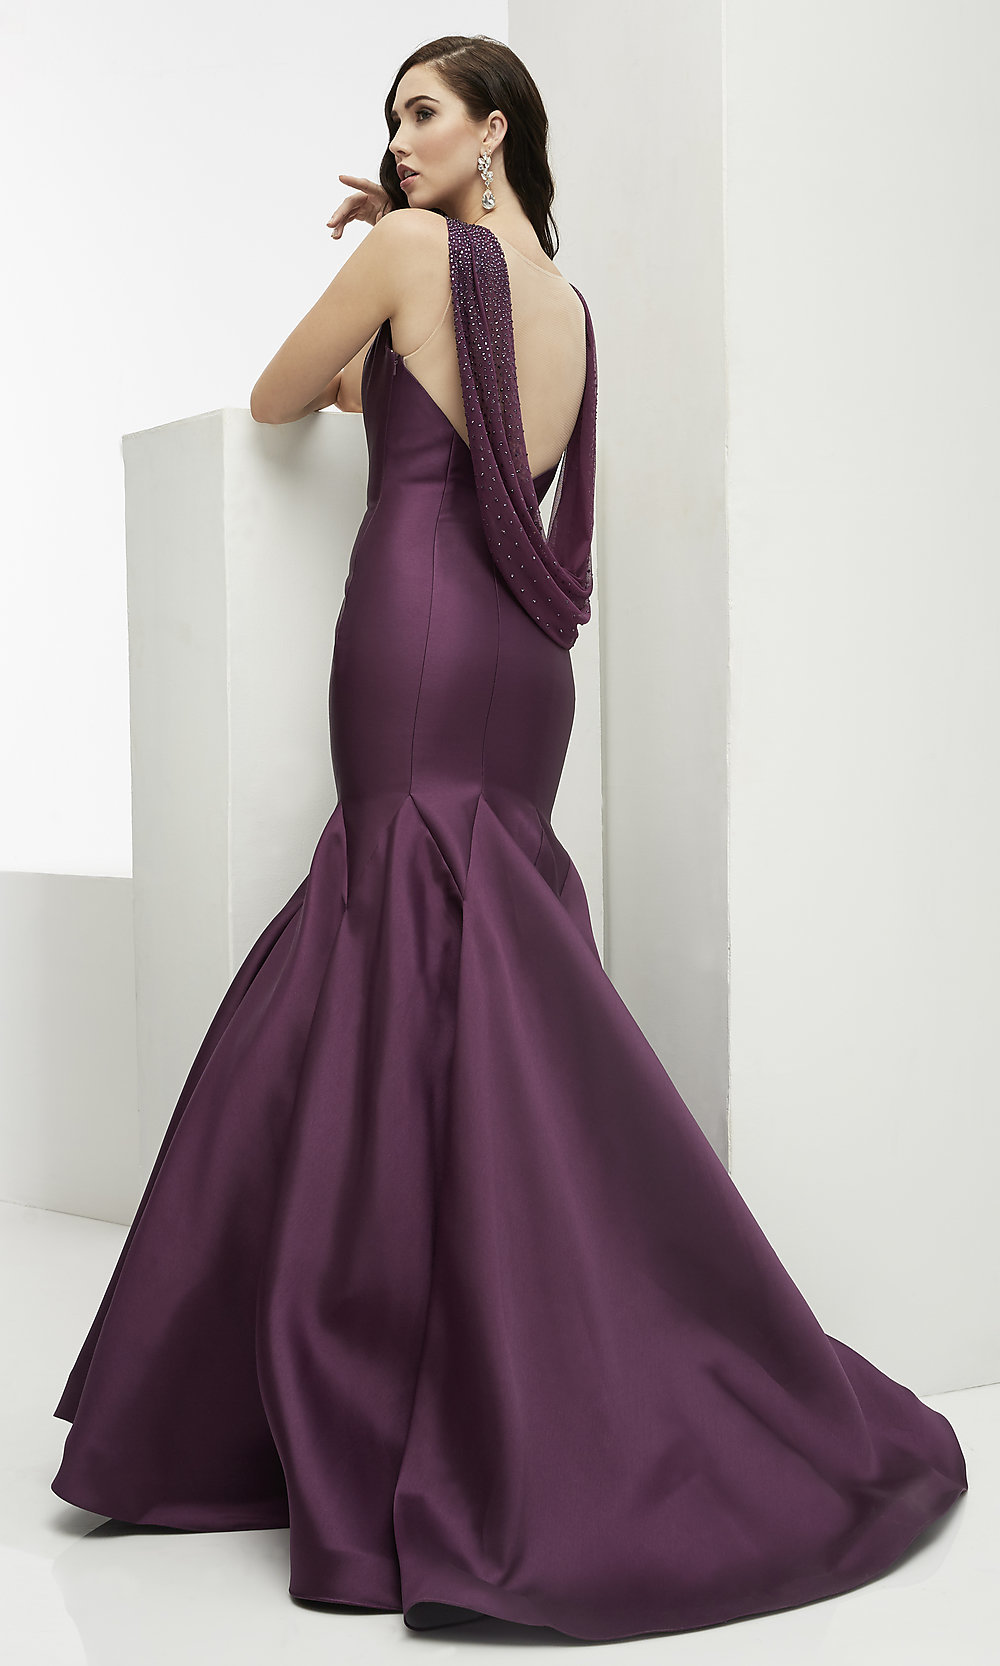 Image result for aubergine gown